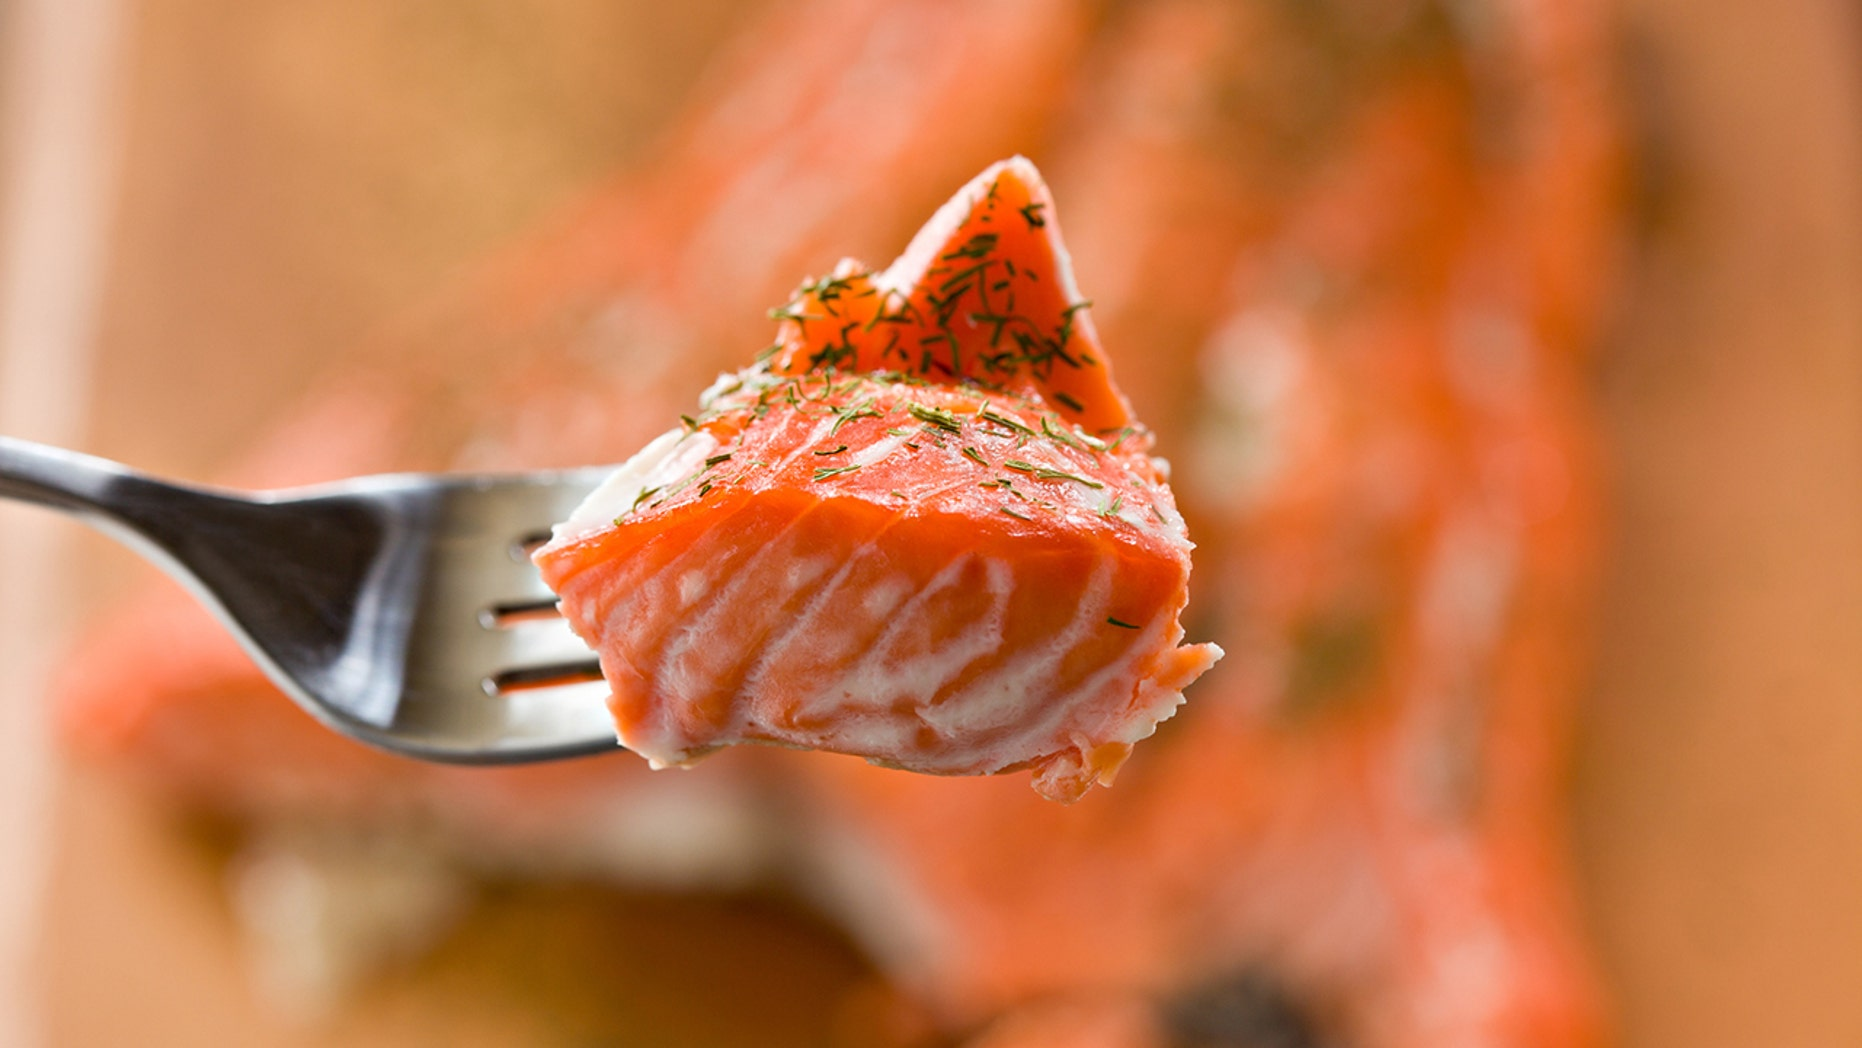 Albumin is a protein present in all salmon. But depending on how it's cooked, it might be more visible.